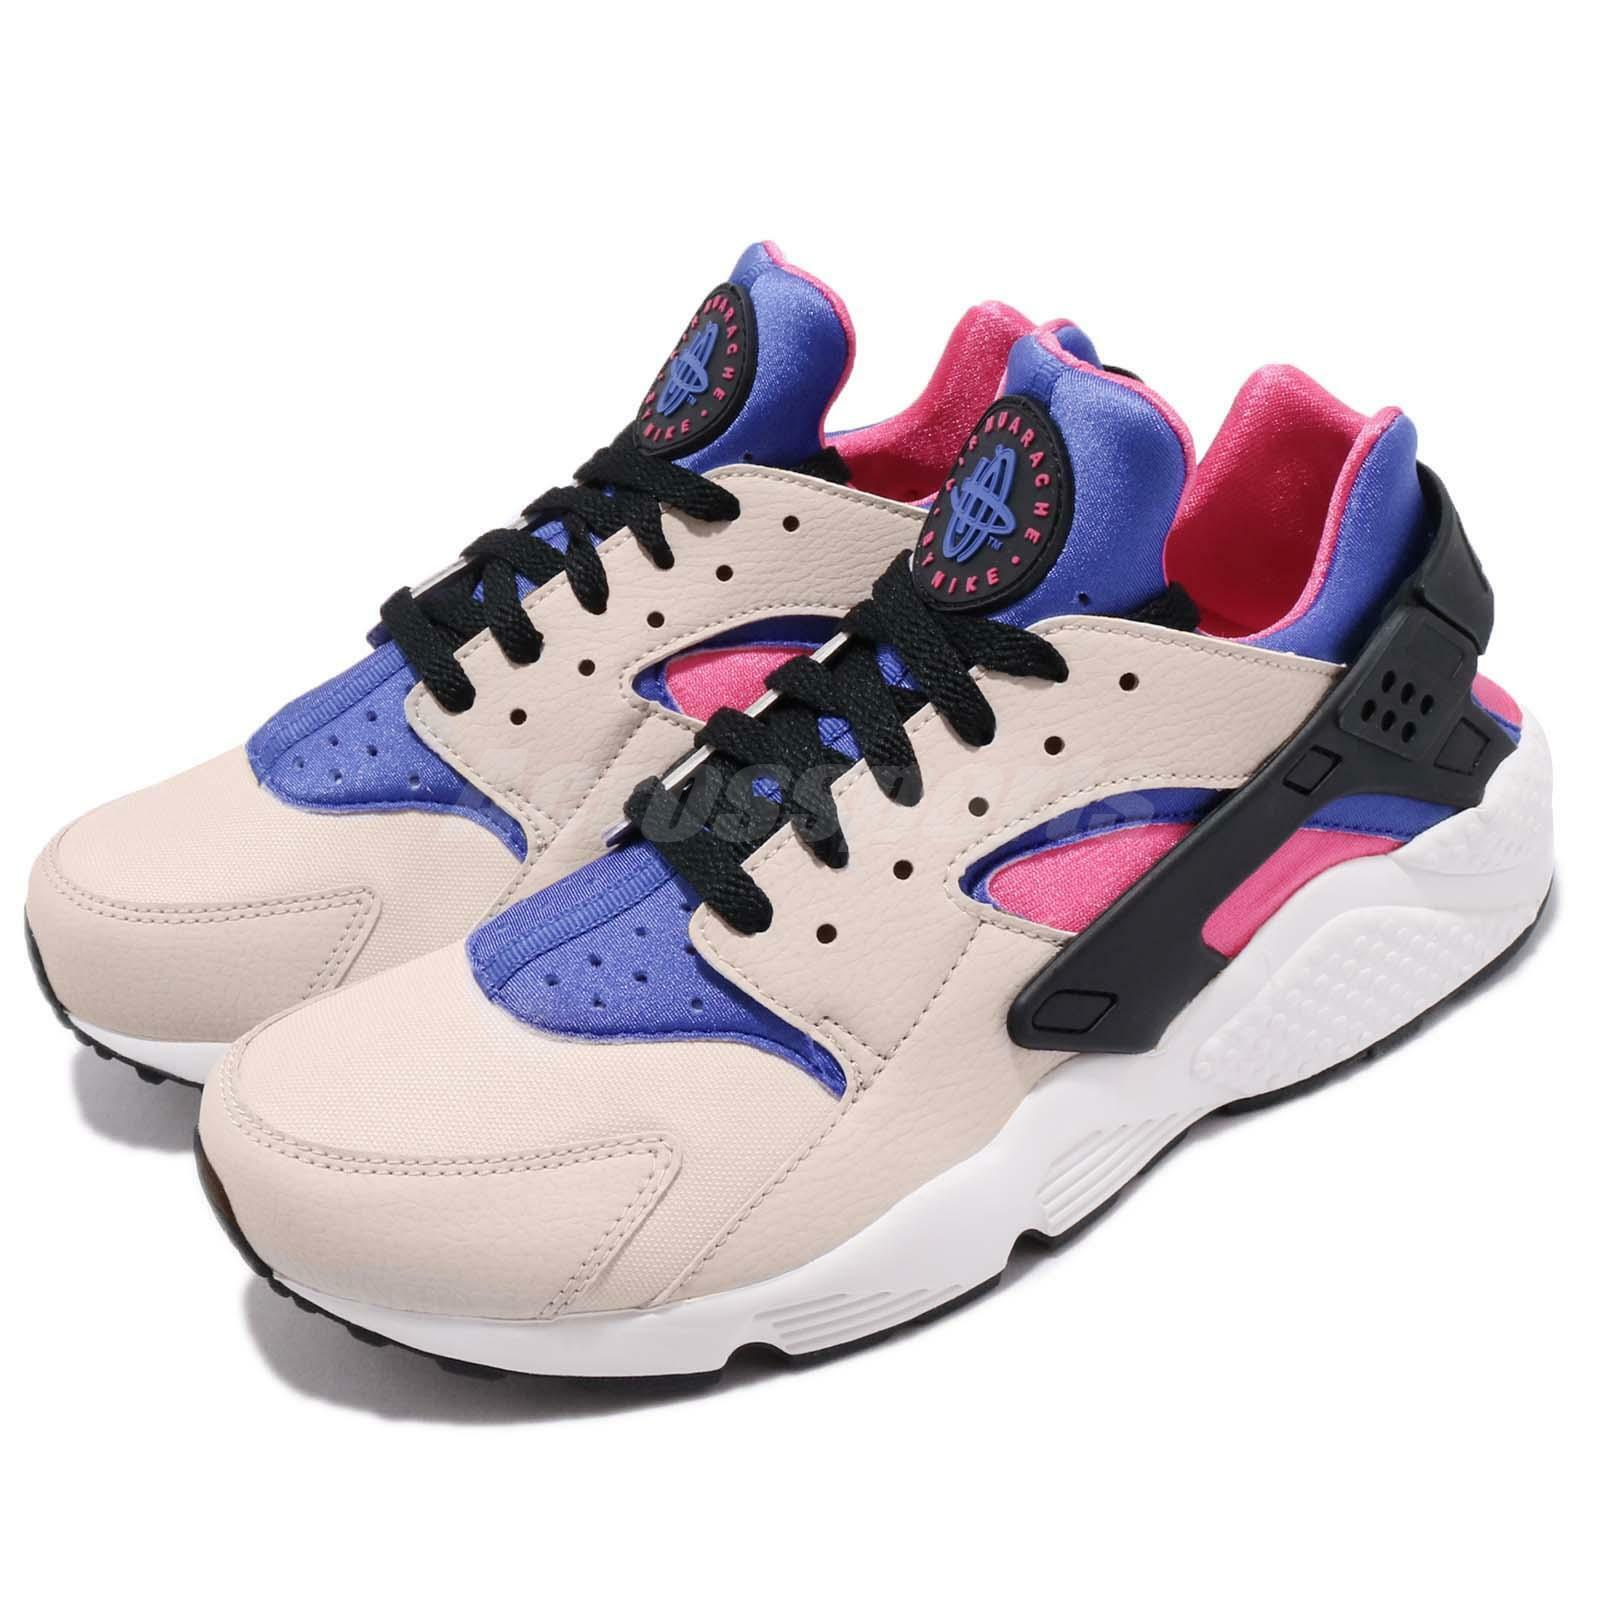 Nike Air Huarache Desert Sand Persian purple Men Running shoes Sneaker 318429-056